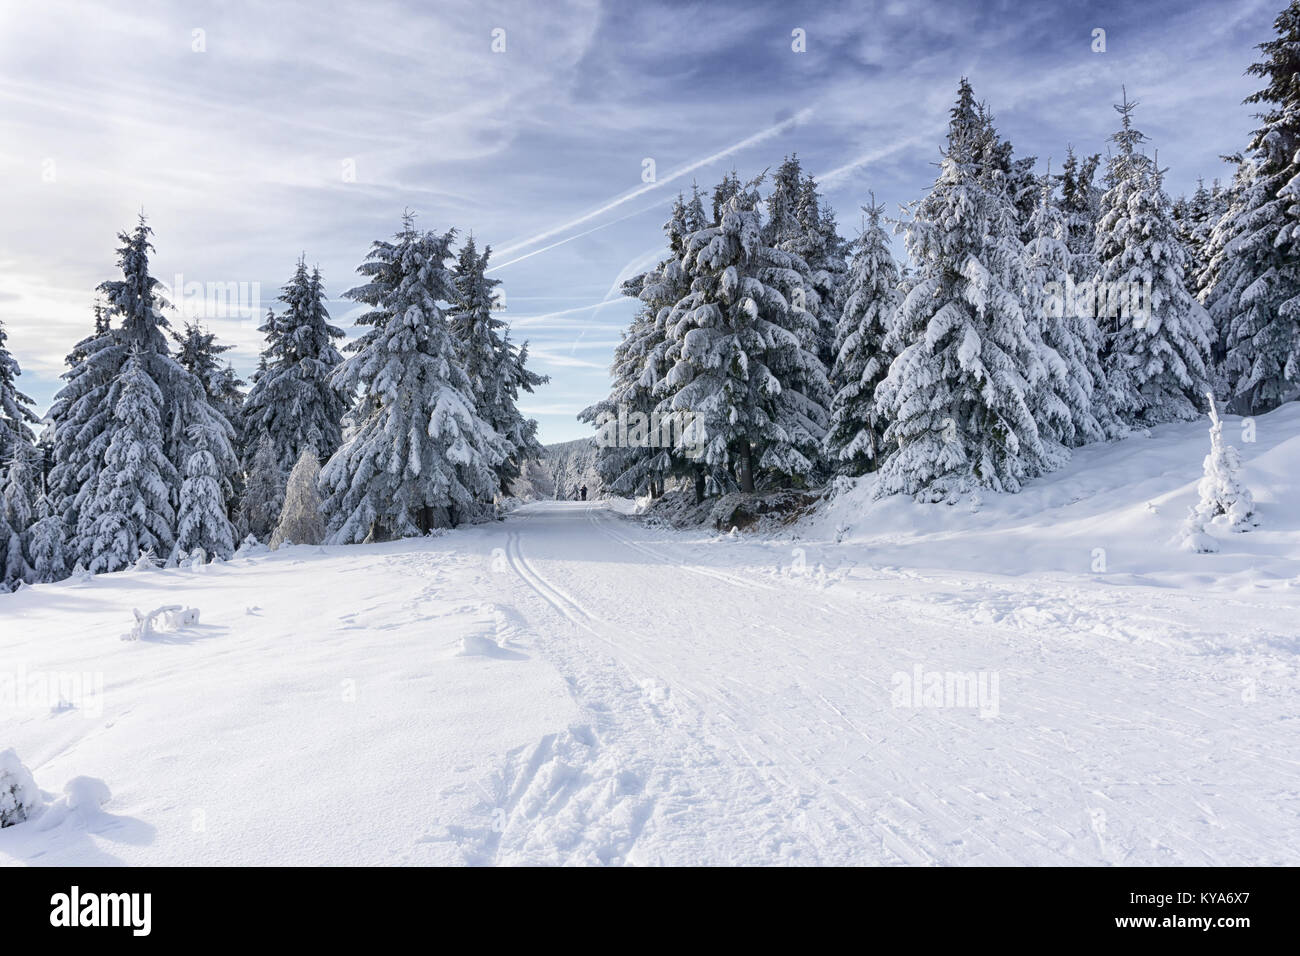 Winter road in mountains. Trees covered with fresh snow, clouds in the blue sky. Groomed ski trails for cross-country - Stock Image